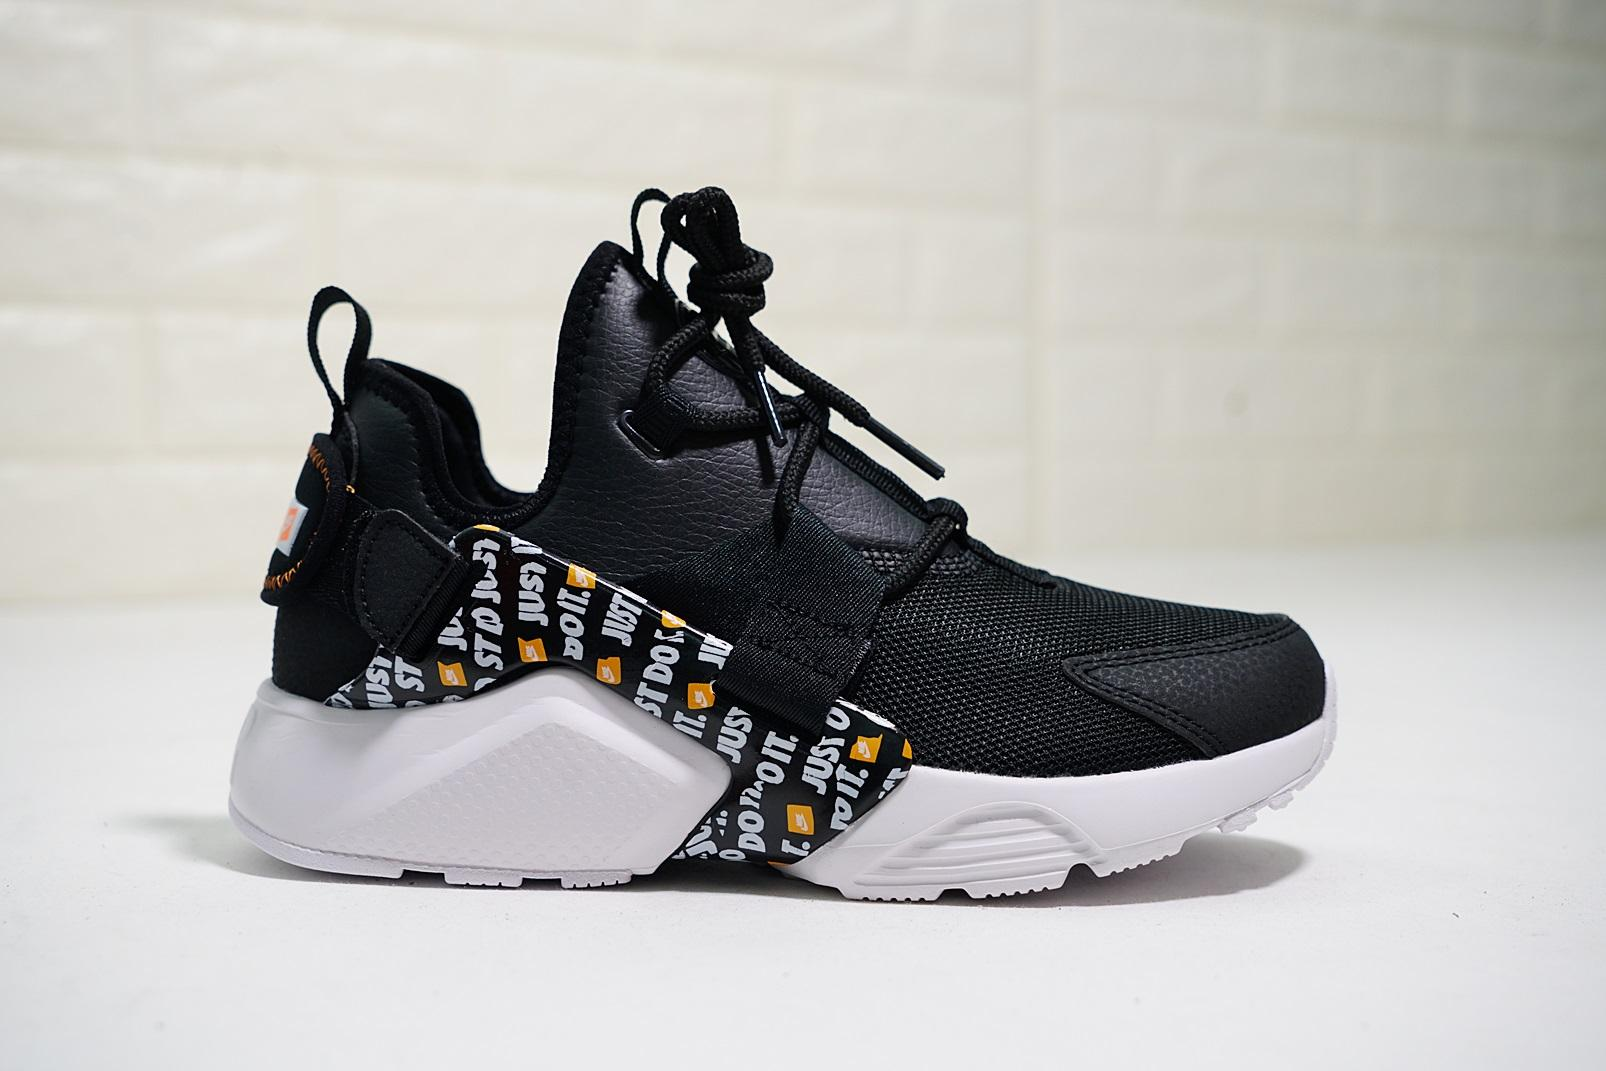 04333dc41d74c 2018 New Arrive Huarache Just Do It Shoes Casual For Top Quality Men Women  Designer Sneakers Size 36 40 Skechers Shoes Mens Dress Shoes From Luoer